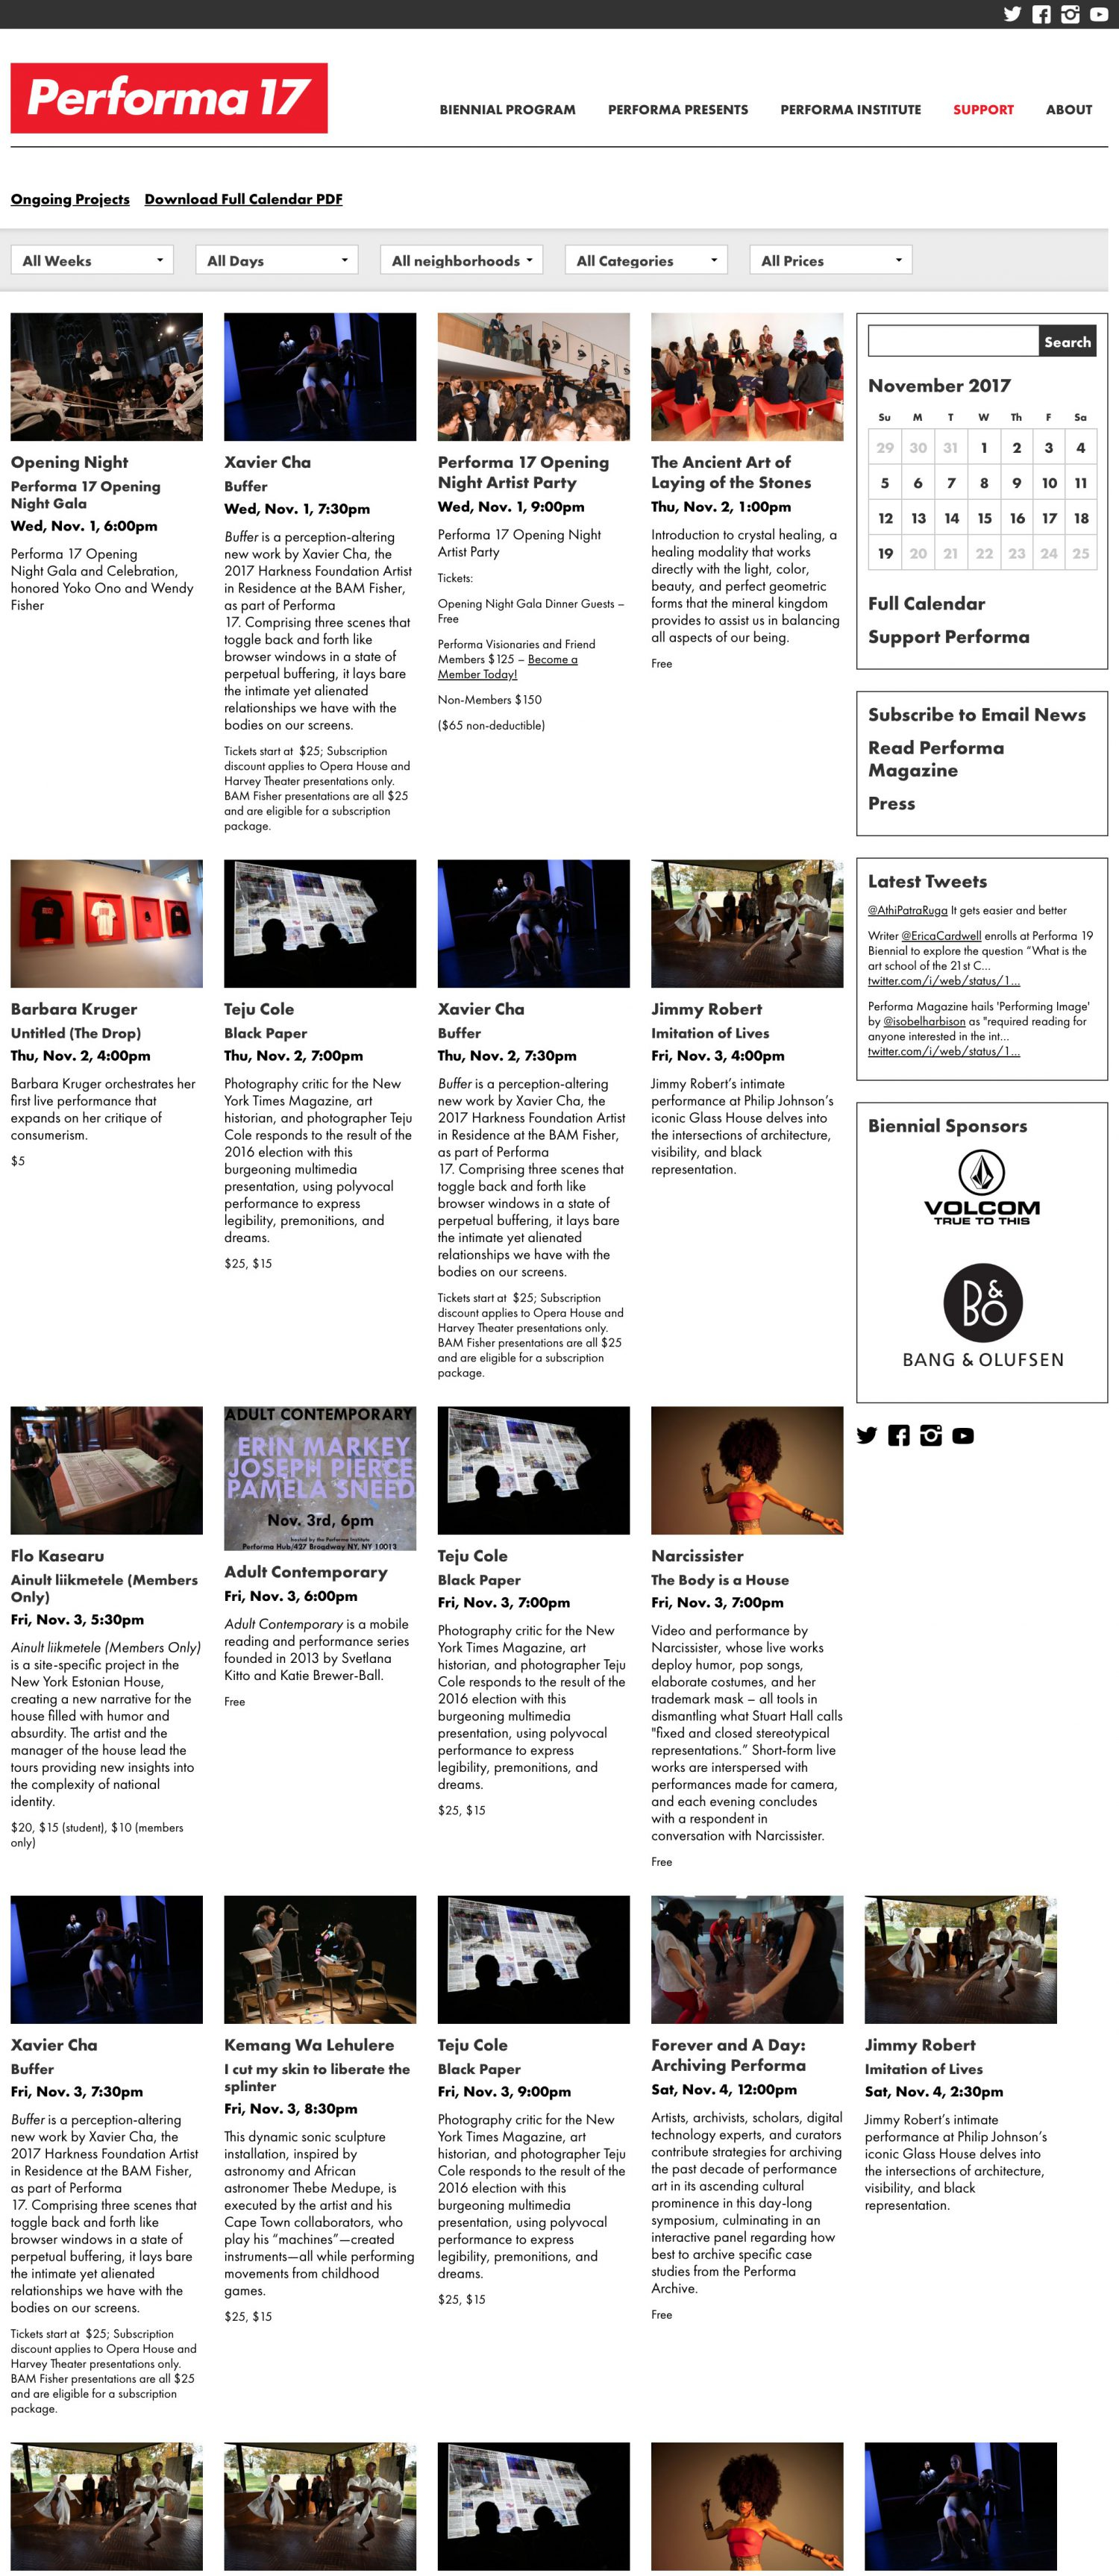 Screenshot of the Performa 17 website's events page